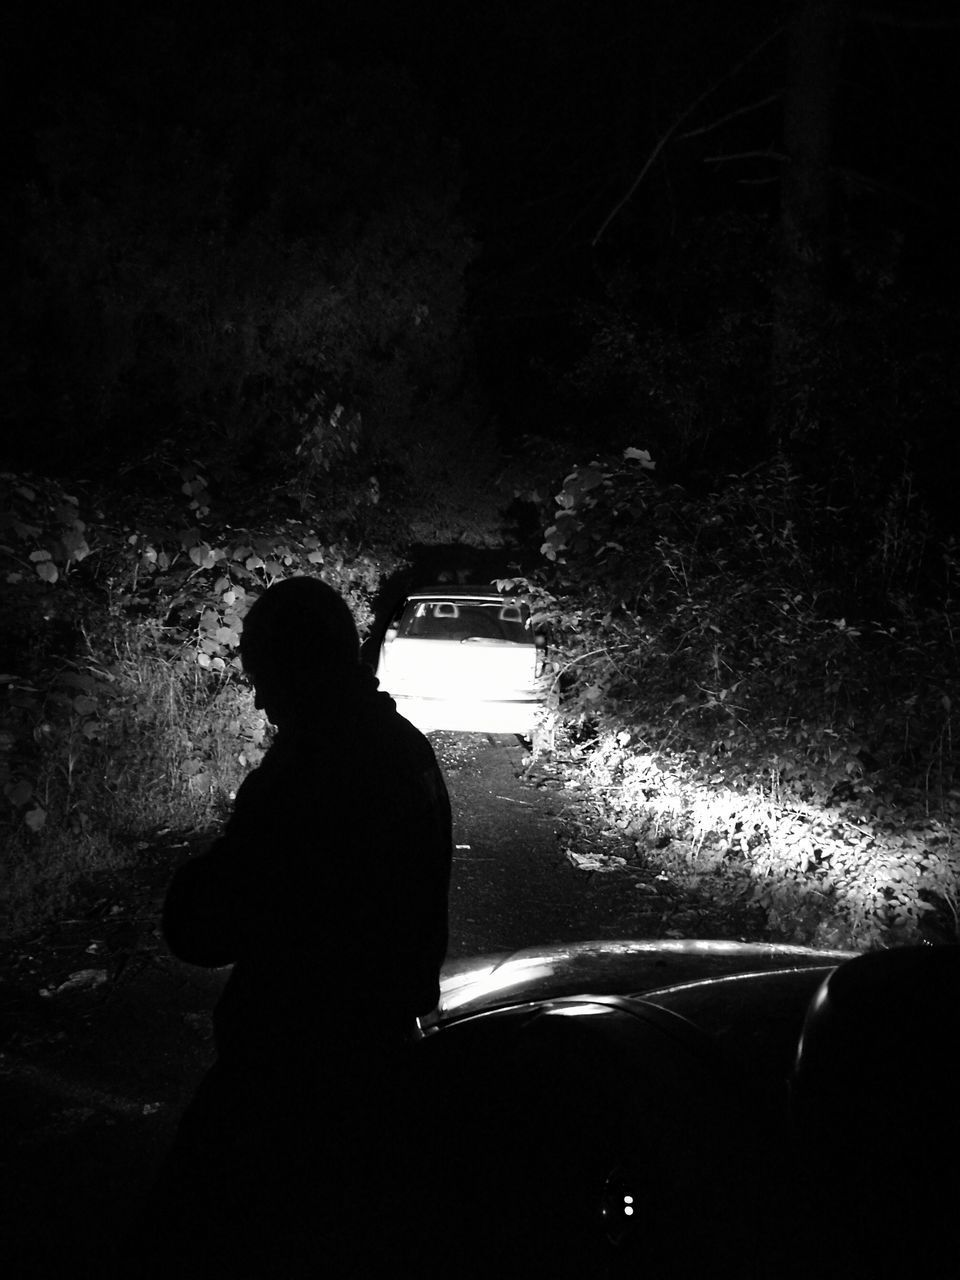 silhouette, real people, dark, night, car, one person, transportation, standing, men, indoors, tree, water, people